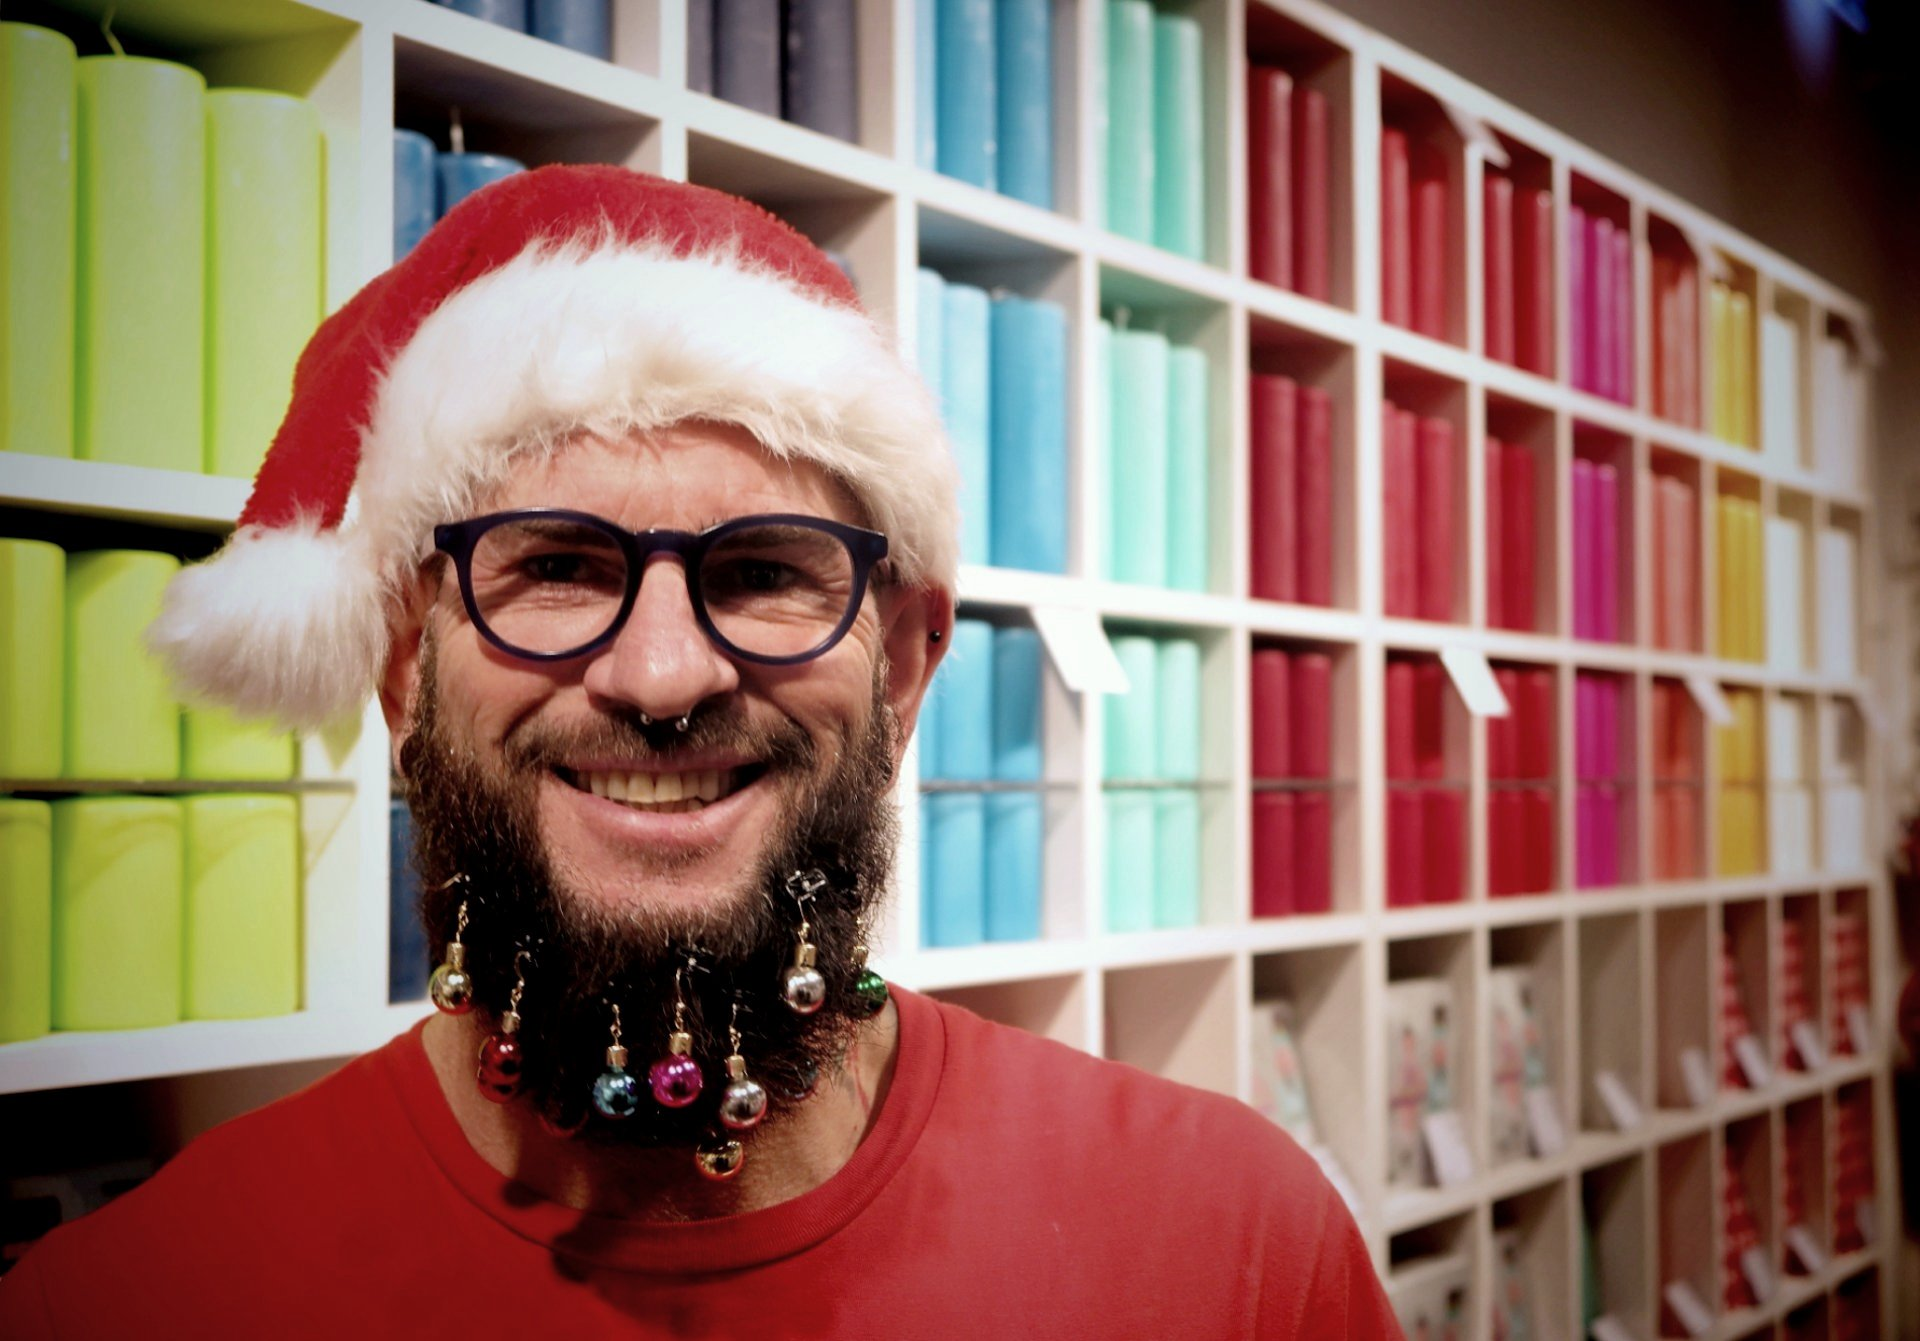 Dotmatchbox: x-mas-ball bearded man